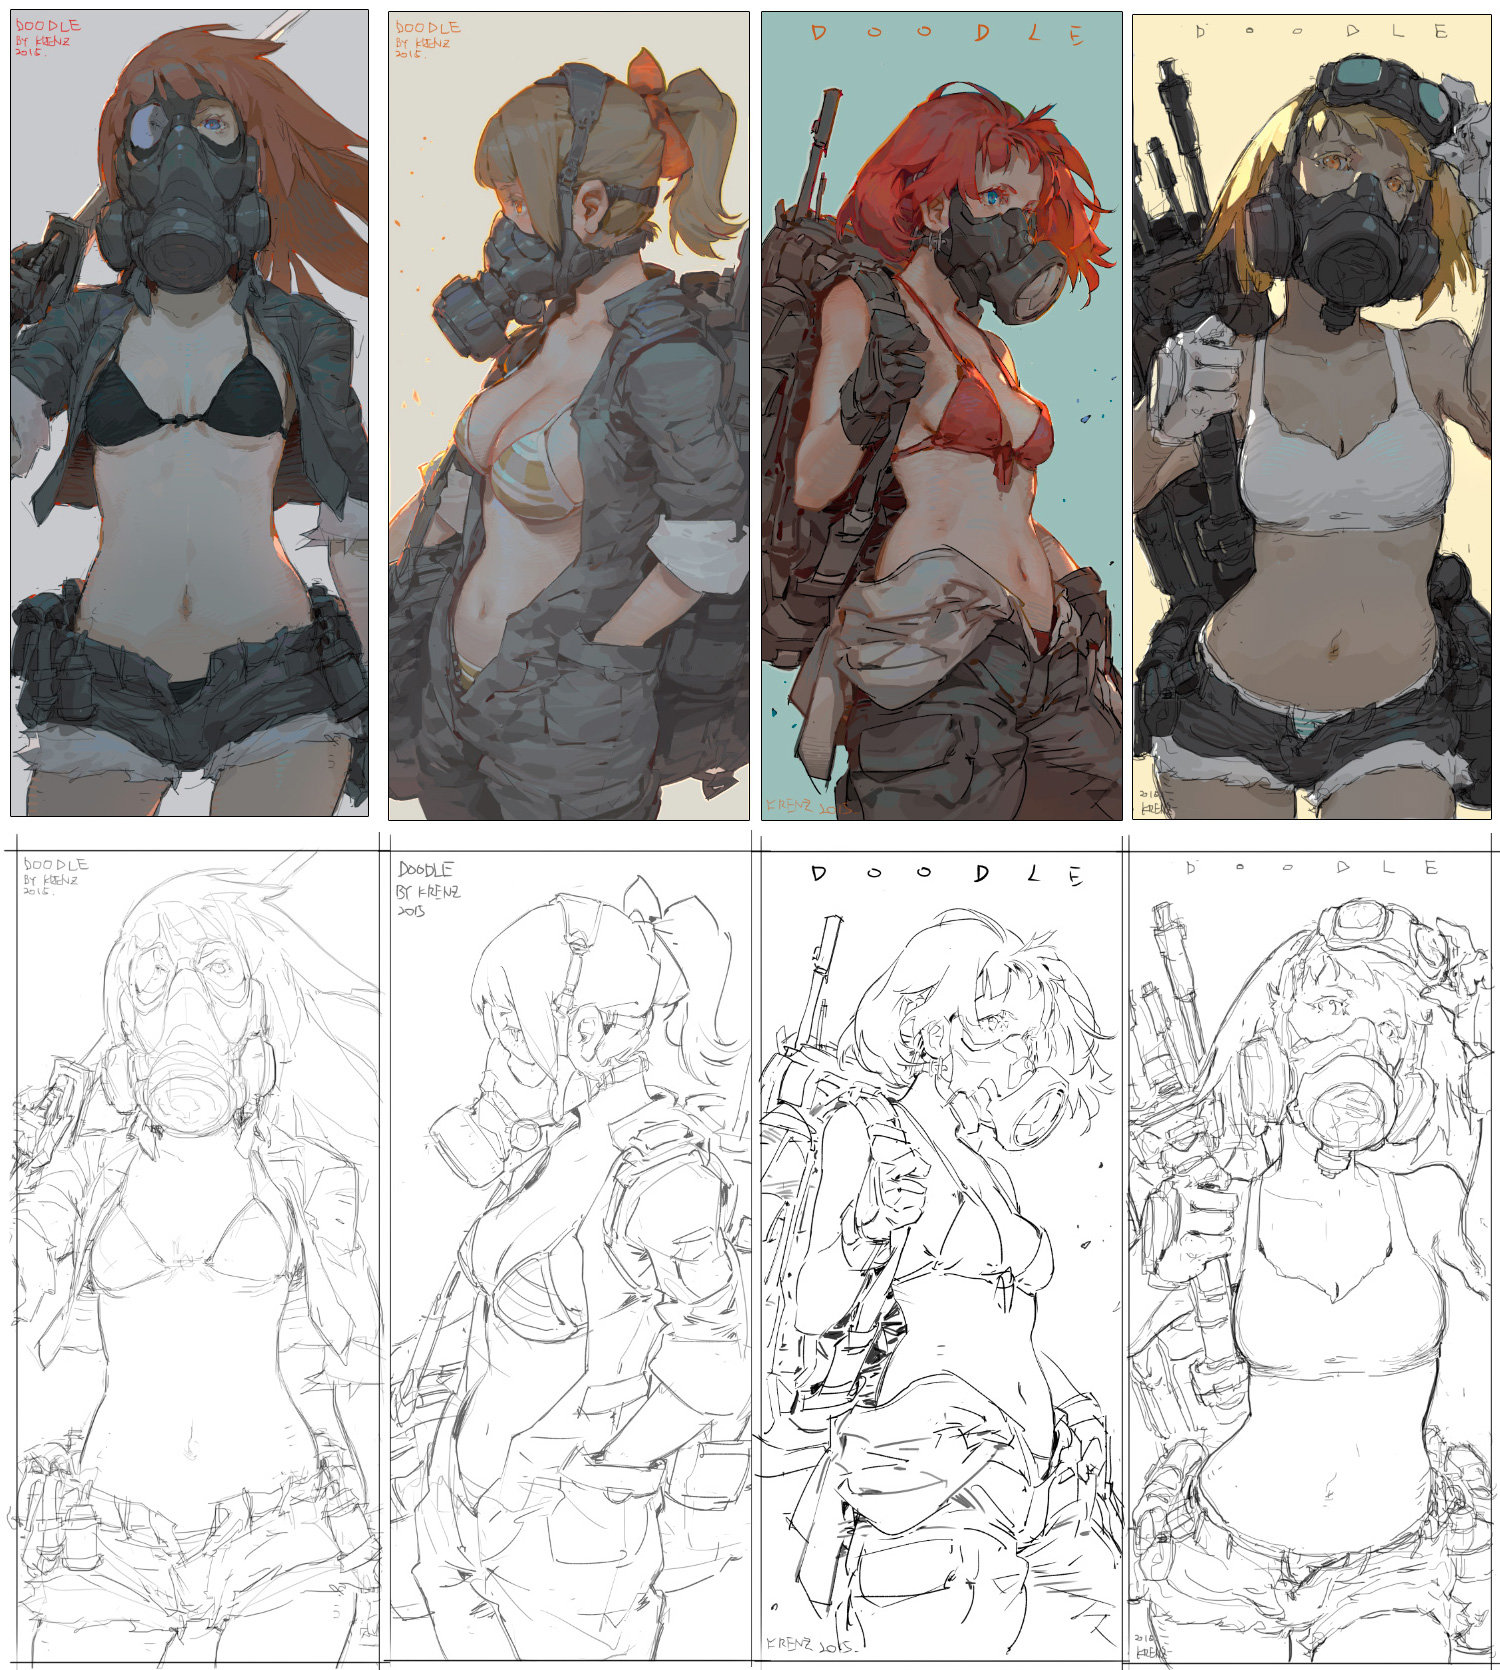 Krenz_Cushart_digital_painting_illustration_girls_doodle